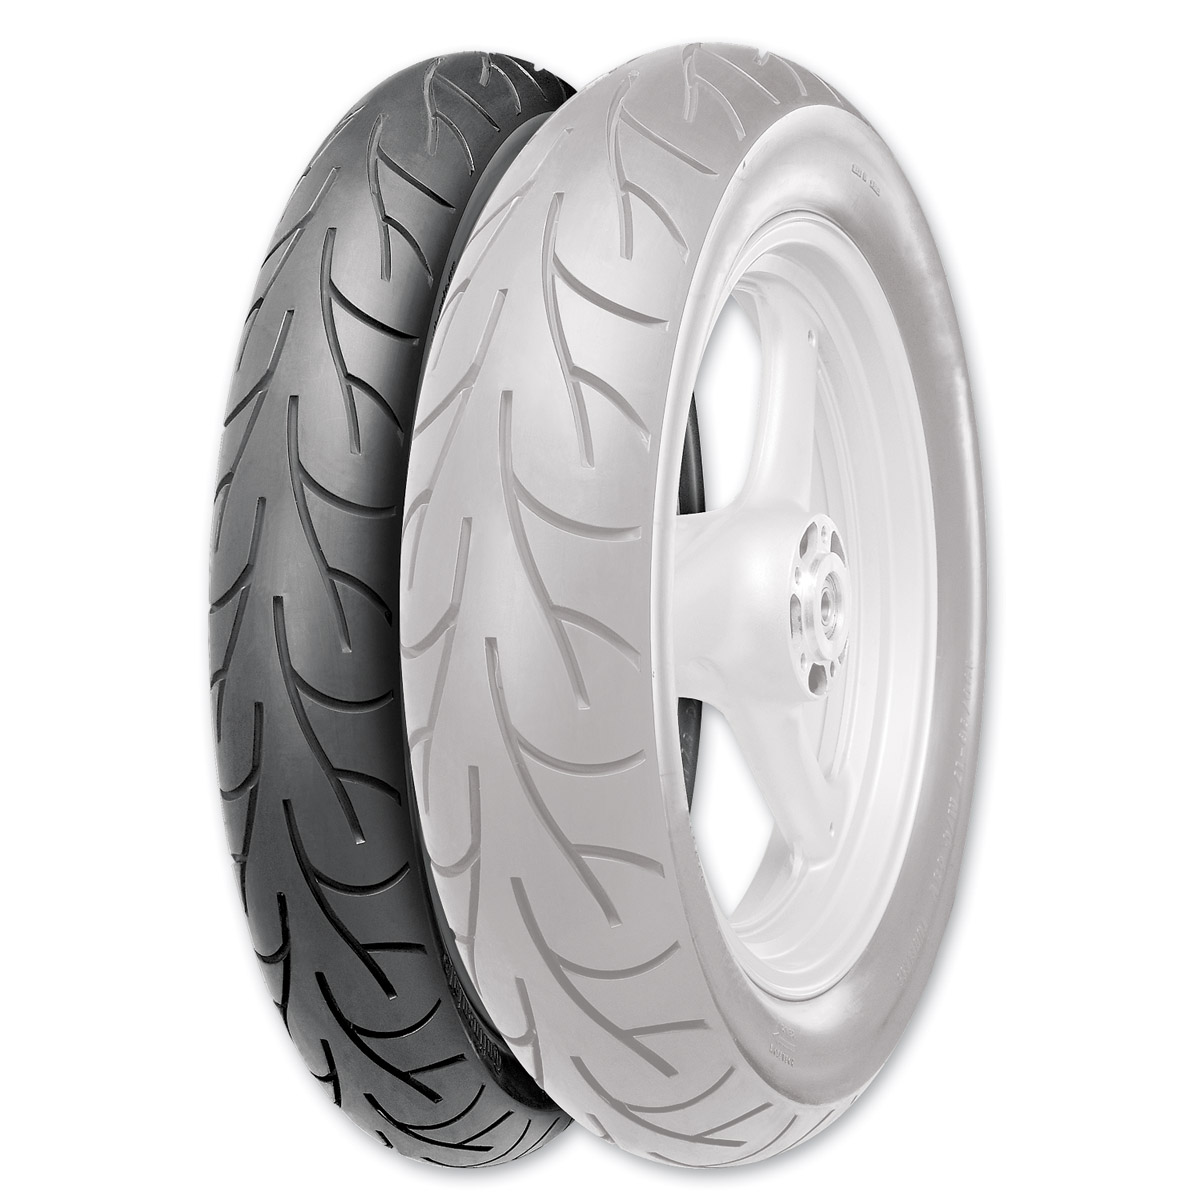 Continental Go 3.00B21 Front Tire